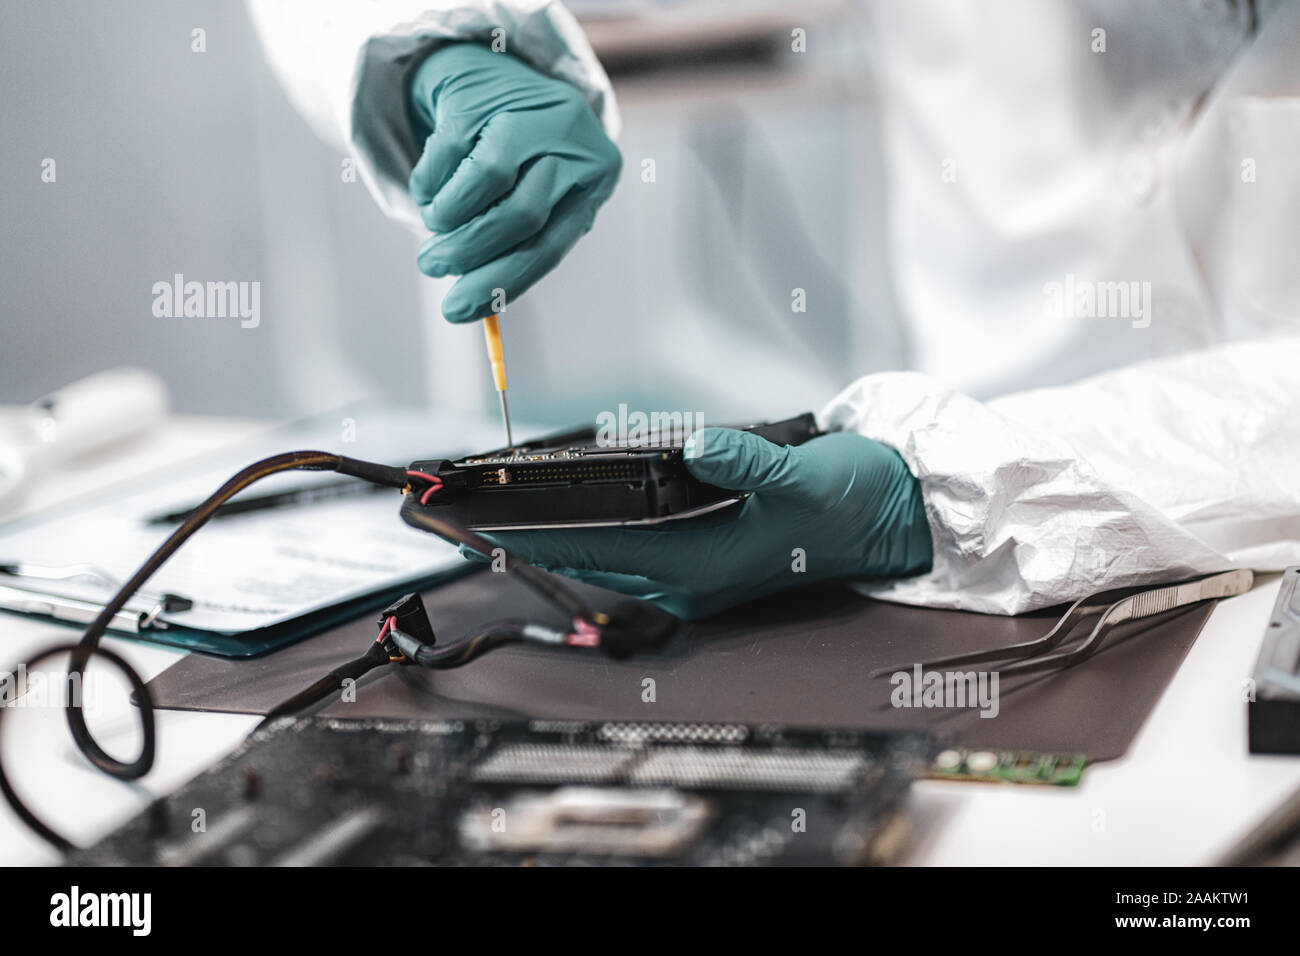 Digital Forensic Science Police Forensic Analyst Examining Computer Hard Drive Stock Photo Alamy